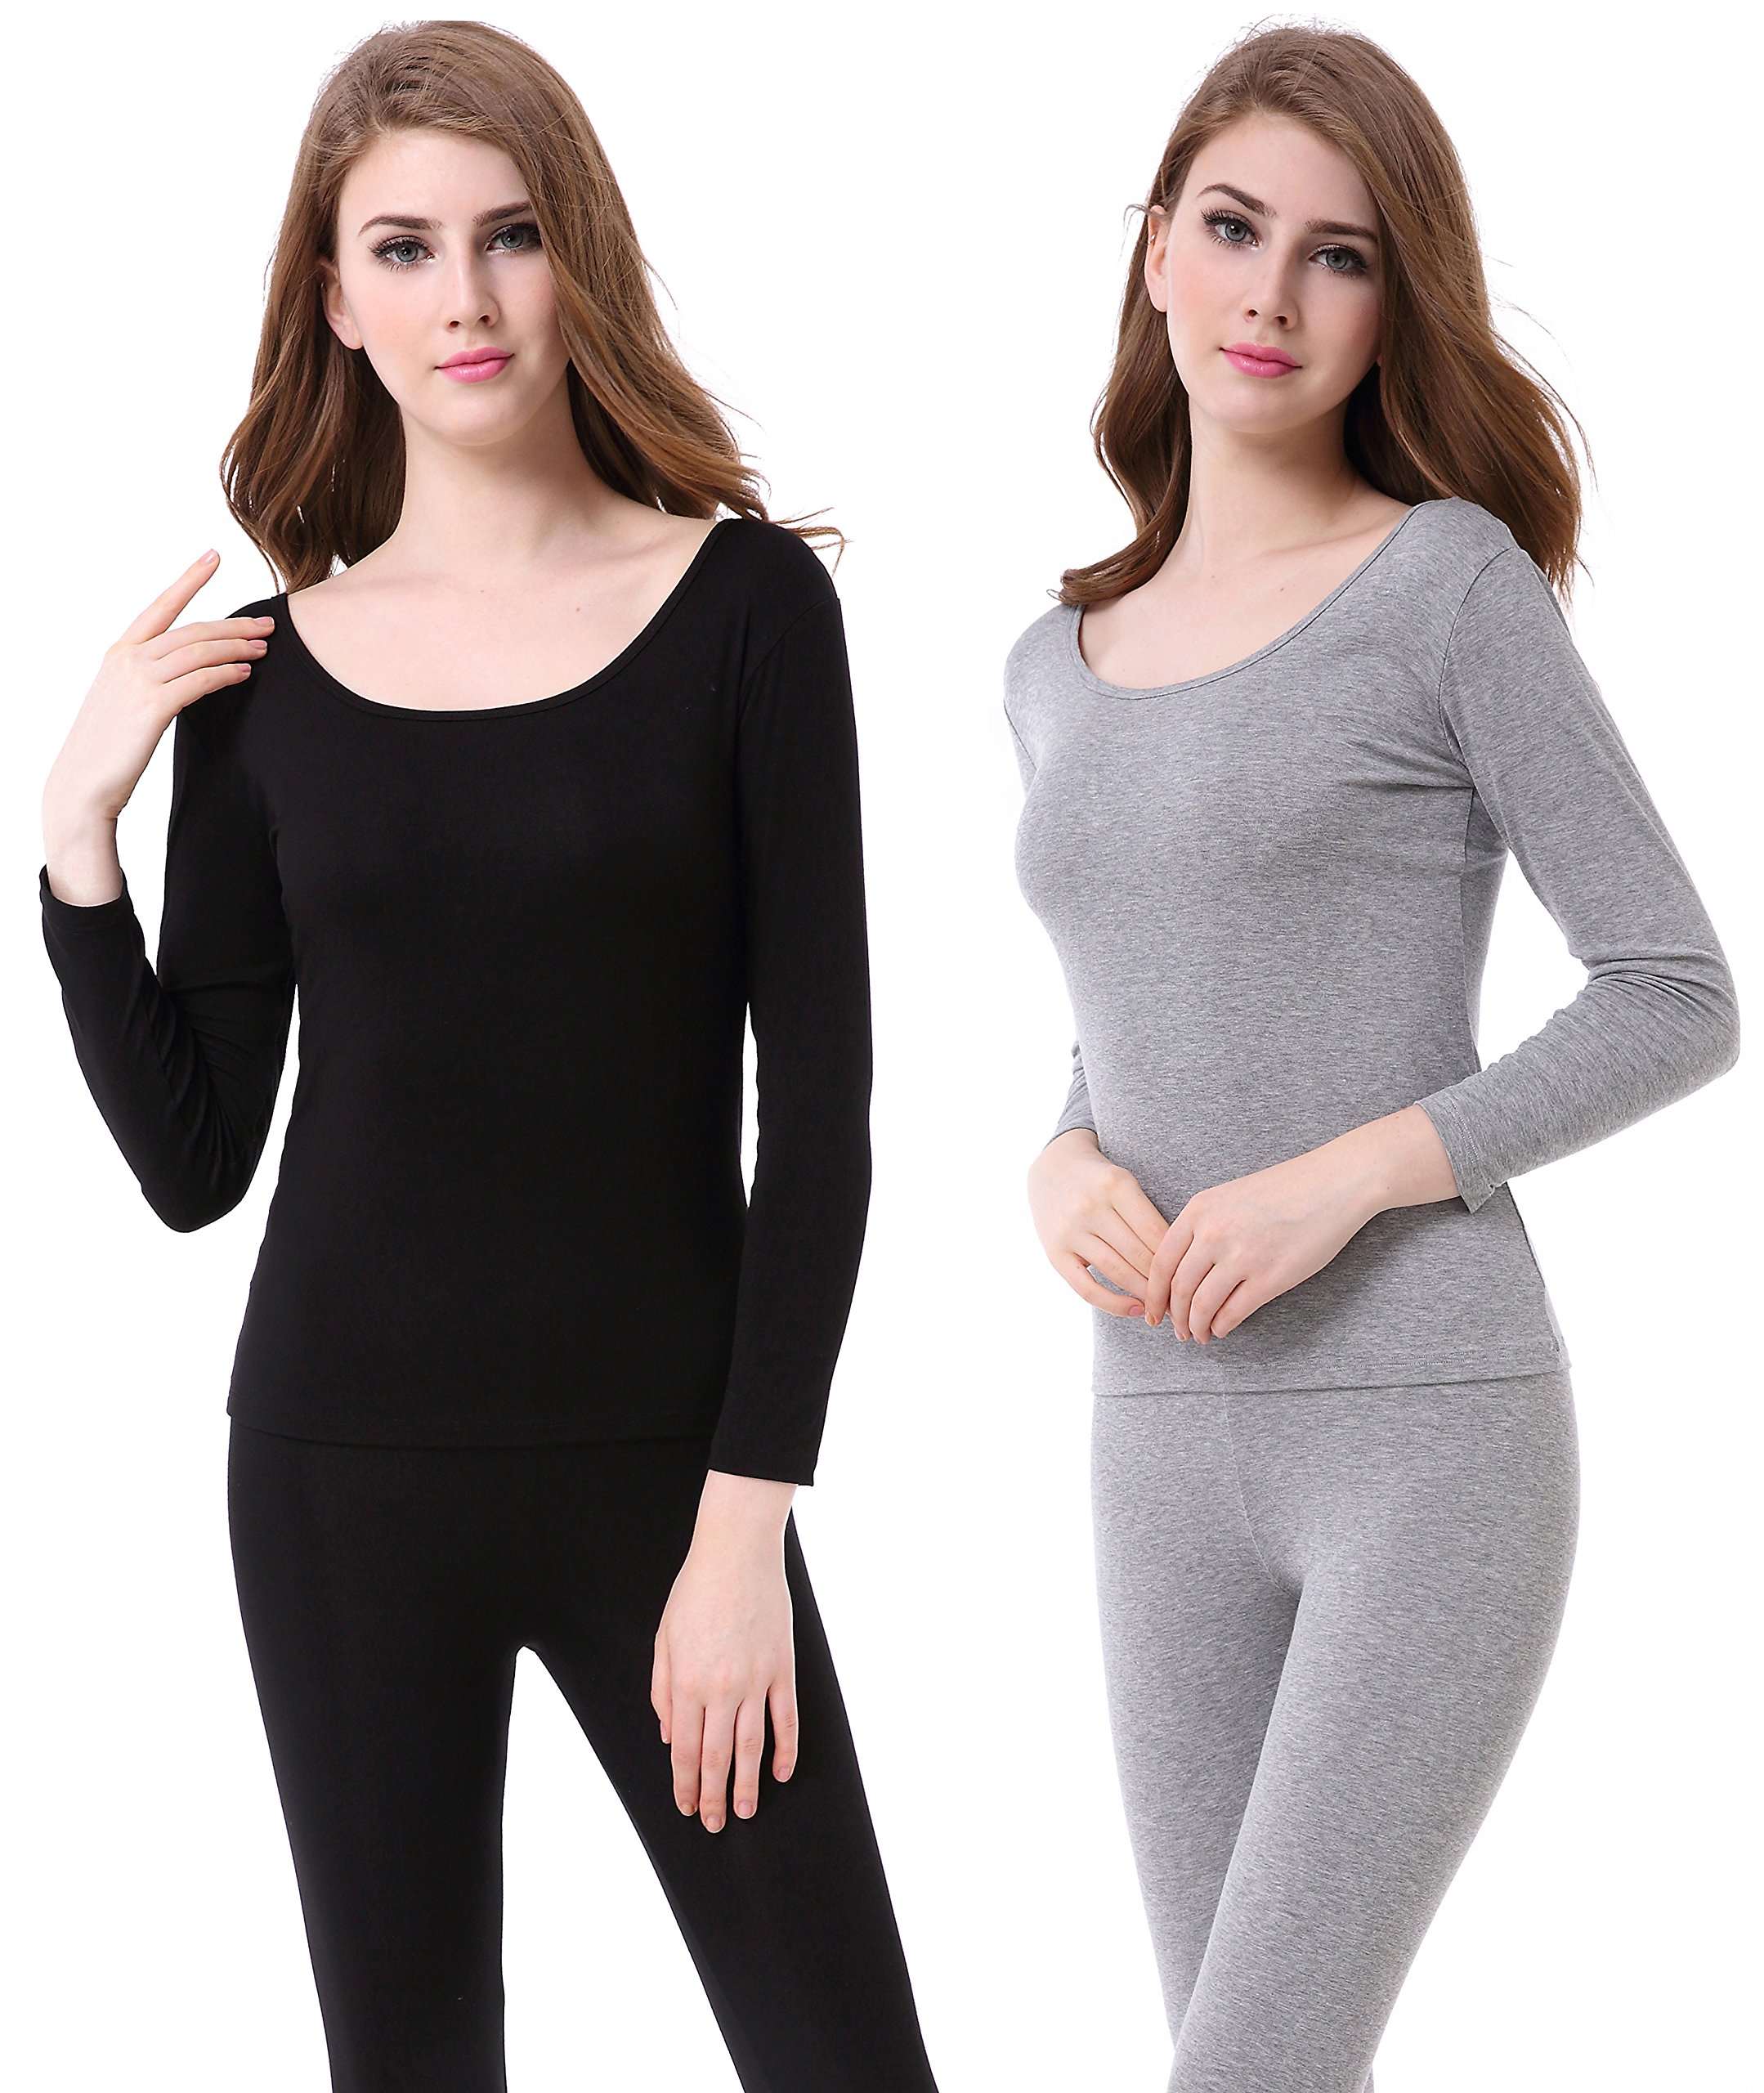 Womens Long Johns Lightweight Comfy Base Layers Scoop Neck Thermal Underwear Set